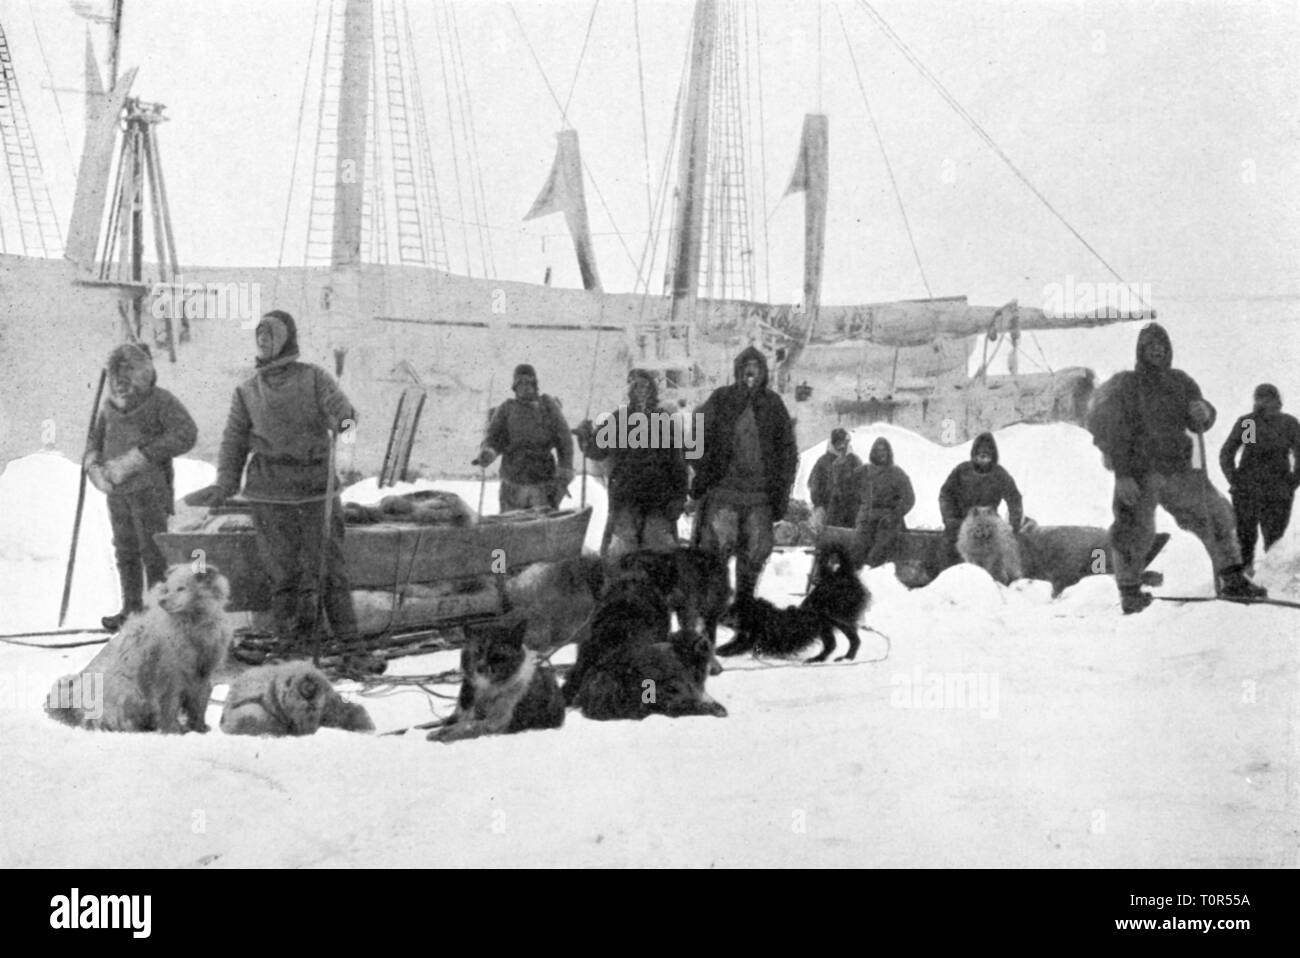 """expedition, polar expedition, Fram expedition 1893 - 1896, Fridtjof Nansen and Fredrik Hjalmar Johansen departing towards North Pole, 14.3.1895, from: Fridtjof Nansen, """"In Nacht und Eis"""", volume II, Leipzig, 1897, 19th century, expedition report, report, reports, travel, travels, research, discovery, discoveries, Arctic, Arctic Ocean, Fram, North Polar Sea, North Pole, Arctic region, North Pole territory, participant, participants, members, member, crew, crews, half length, standing, dog sled, dog sleds, sleigh, animal, animals, dog, dogs, resear, Additional-Rights-Clearance-Info-Not-Available Stock Photo"""